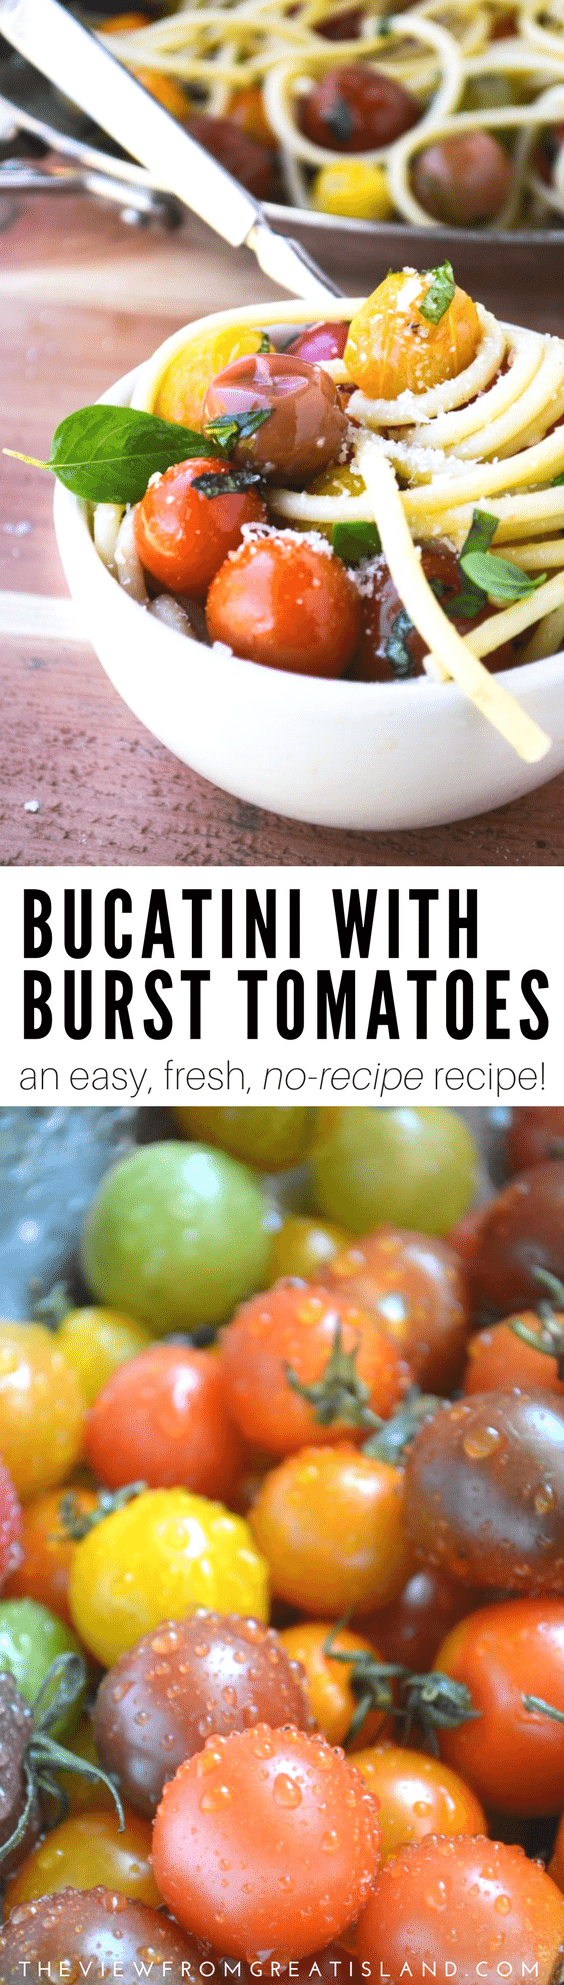 Bucatini with Burst Tomatoes is a gloriously healthy pasta recipe made with juicy, colorful cherry tomatoes and fresh basil ~ no matter what the calendar says, this recipe screams summer! #bucatini #pastarecipe #tomatoes #cherrytomatoes #summerpastarecipe #healthypastarecipe #vegetarianpasta #vegetarian #dinner #30minutemeal #vegan #vegetarian #heirloomtomatoes